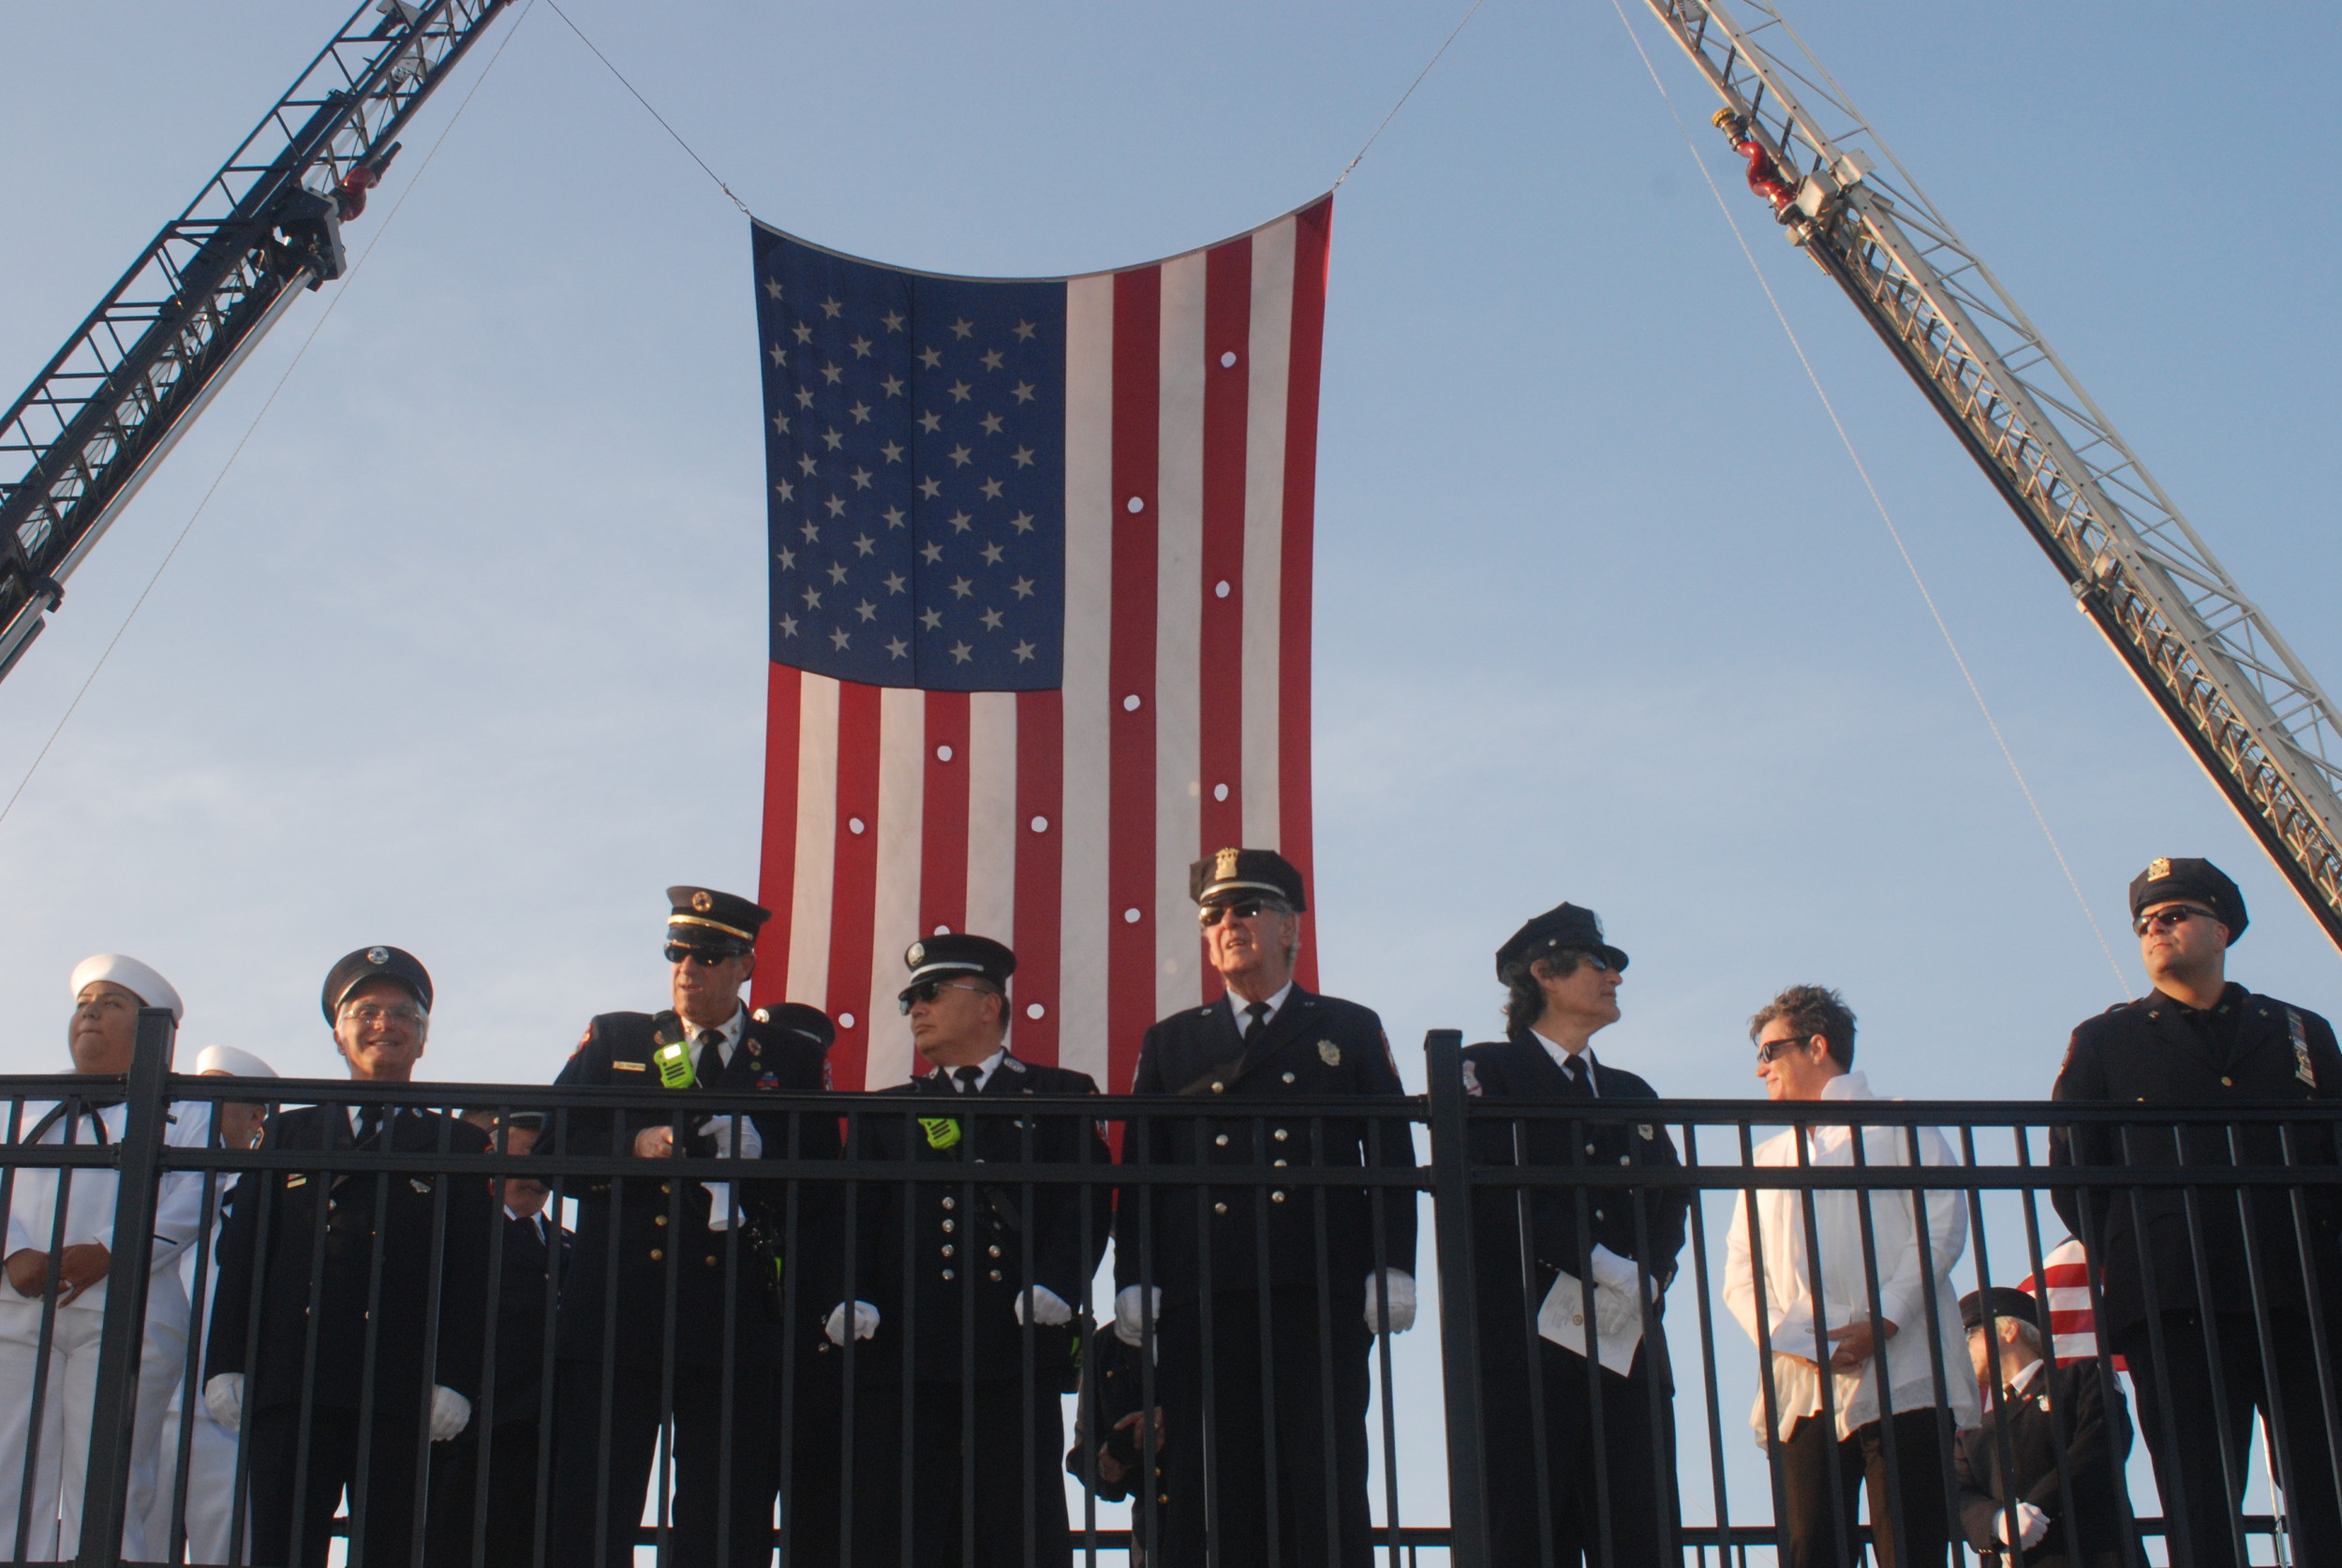 First-responders and members of the military stood atop the town's new 9/11 memorial, with a massive American flag hung behind them.